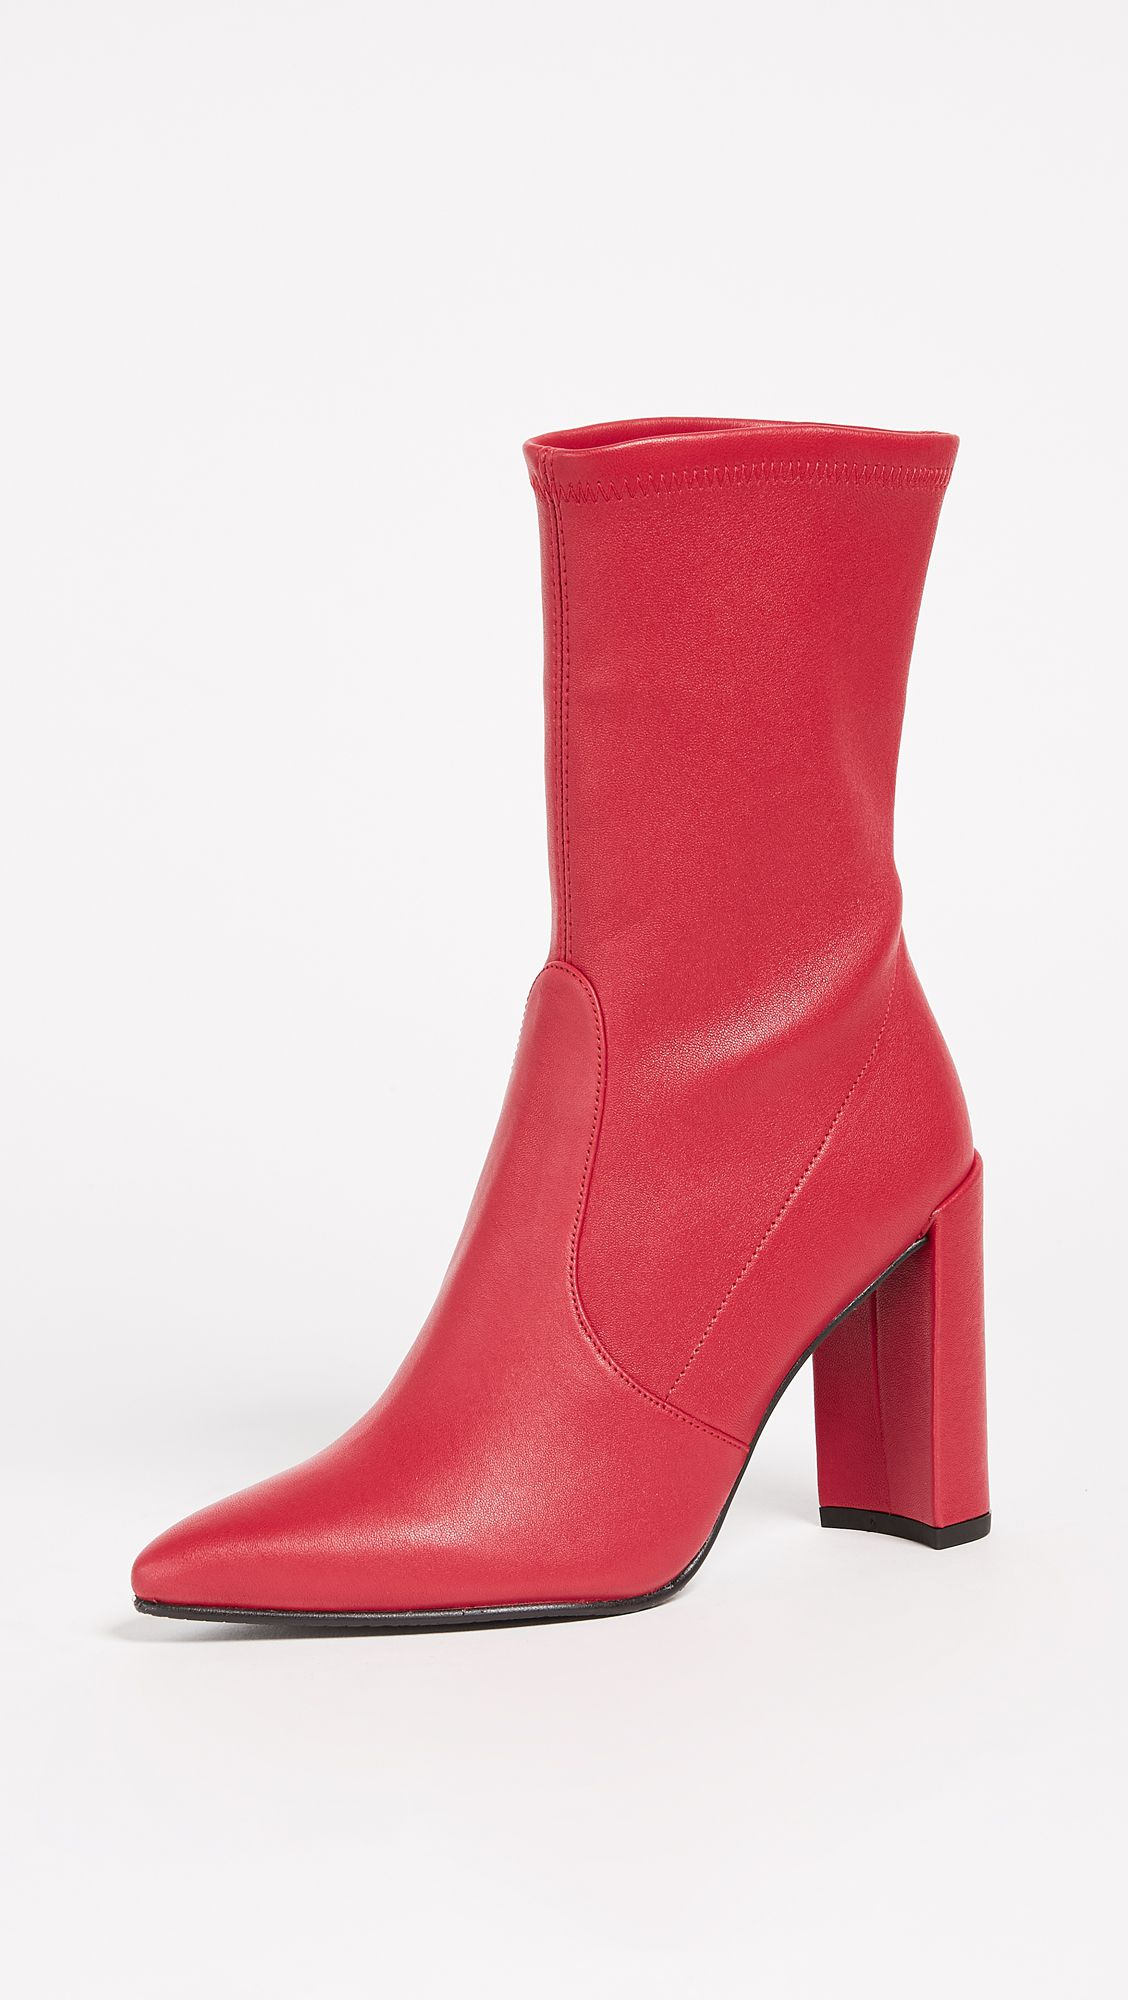 Red Stuart Weitzman ankle boots